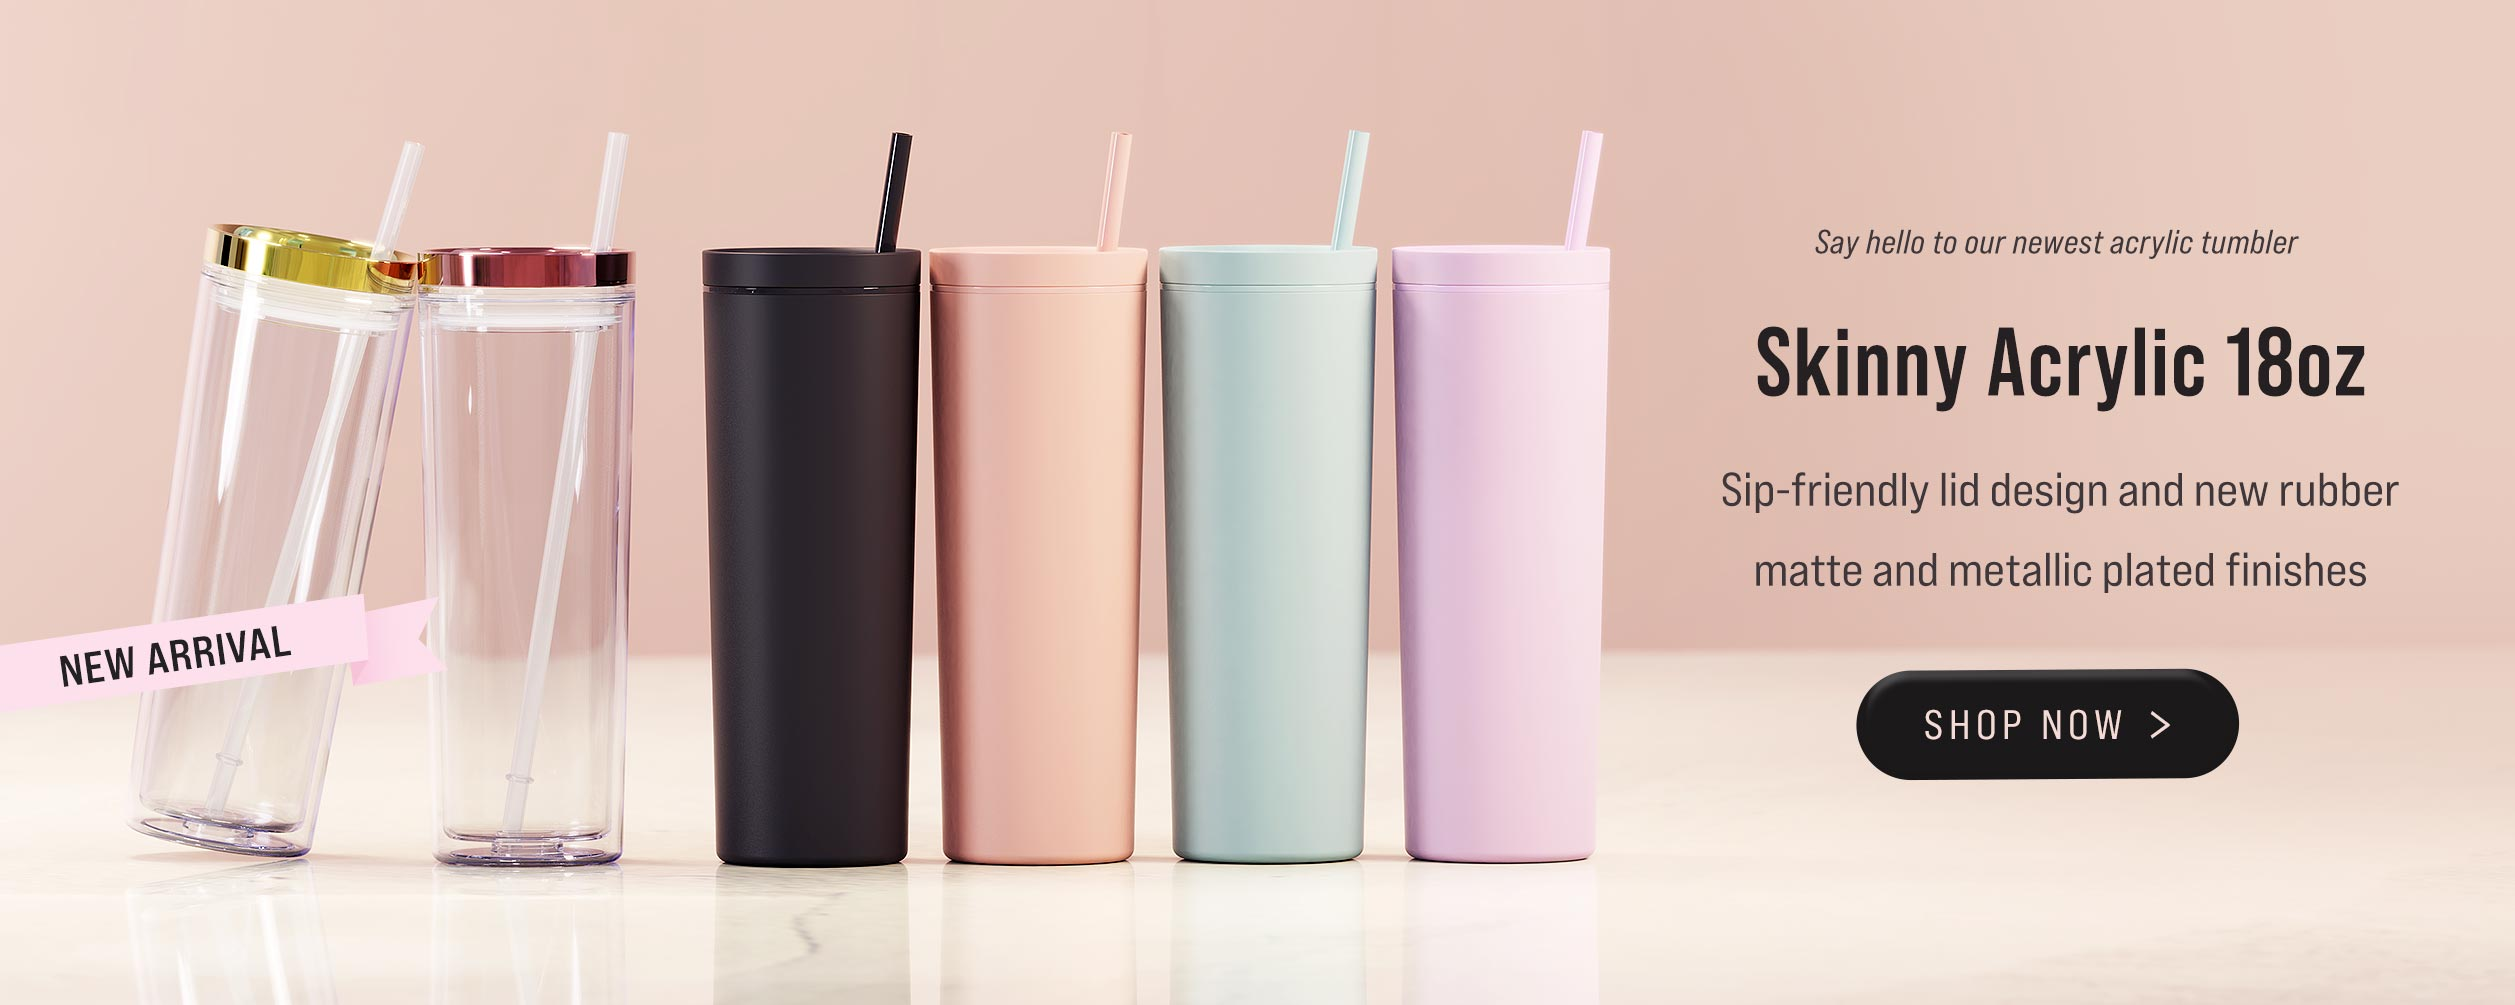 Skinny Acrylic 18oz Tumbler now in stock and available for purchase in Matte Blush, Matte Black, Matte Seaglass, Matte Cotton Pink, Clear with Gold and Rose Gold Metallic Finishes